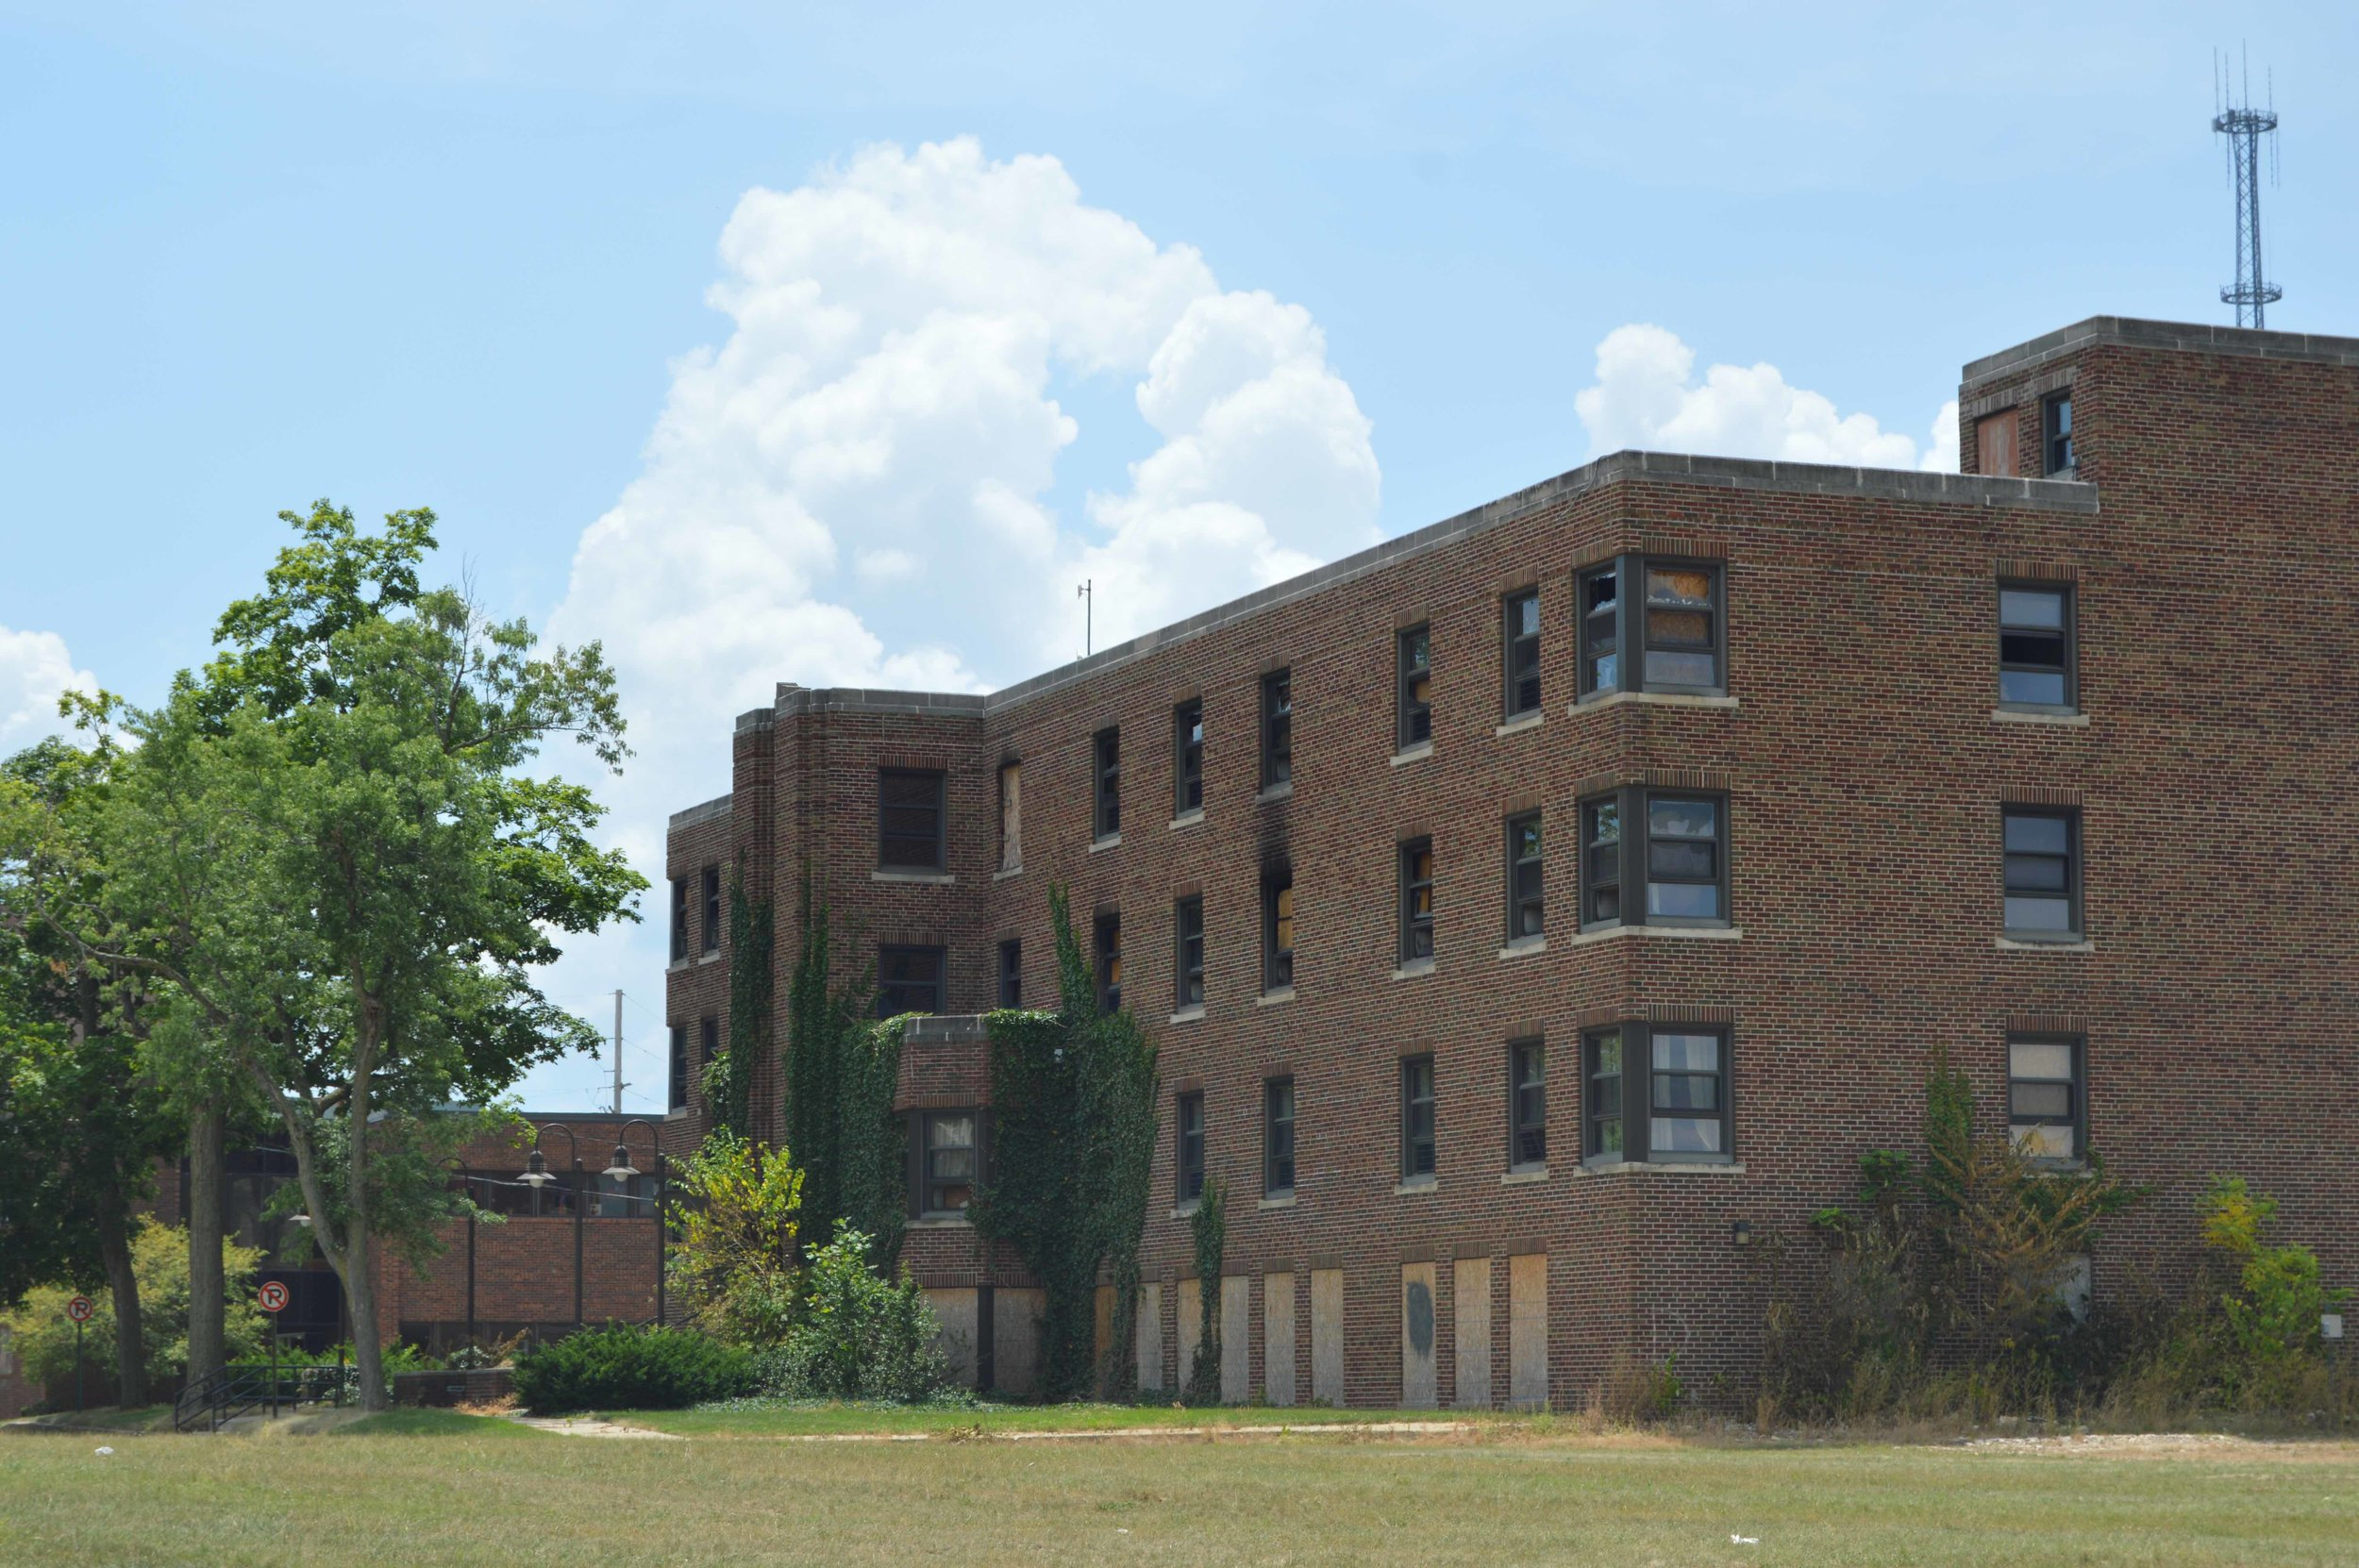 The former Mennonite Hospital Building with boarded up windows and doors. (Photo: Christian Prenzler/AdaptBN)